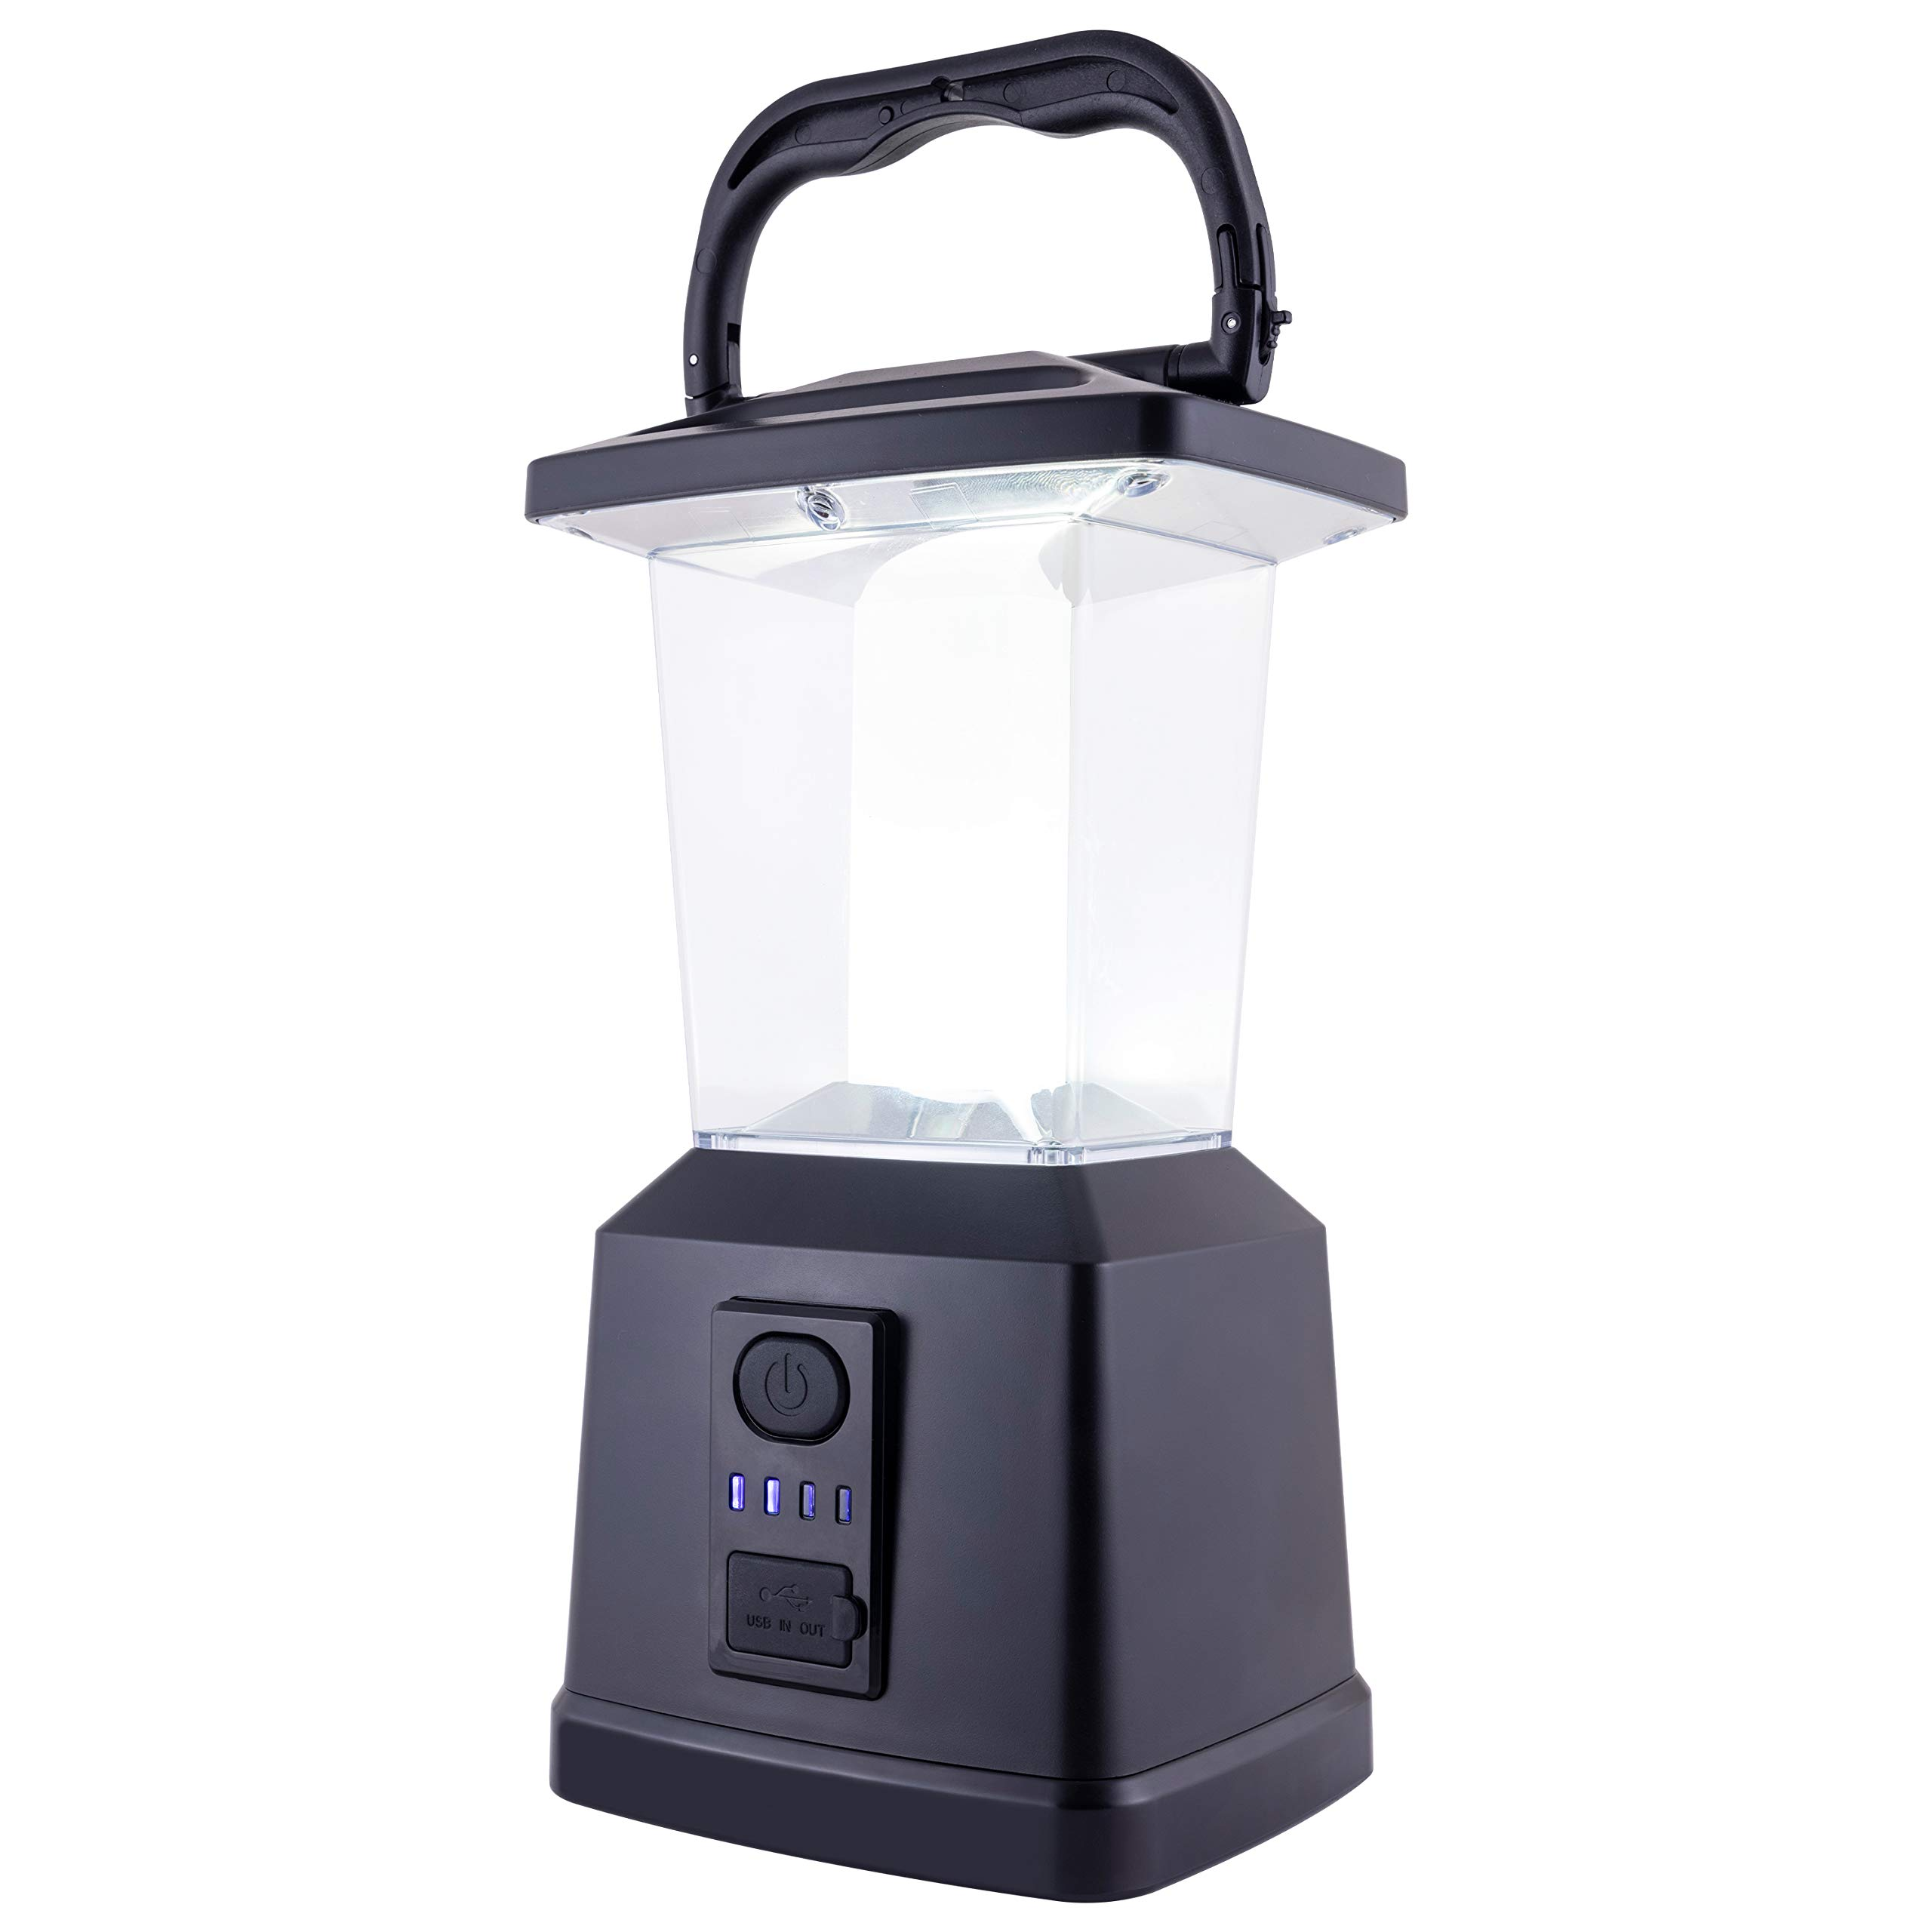 Enbrighten LED Rechargeable Lantern, USB Power Bank, 650 Lumen, Dimmable, Ideal for Outdoor, Patio, Camping, Hurricane, Storm, Tornado & Emergency, 43934 by Enbrighten